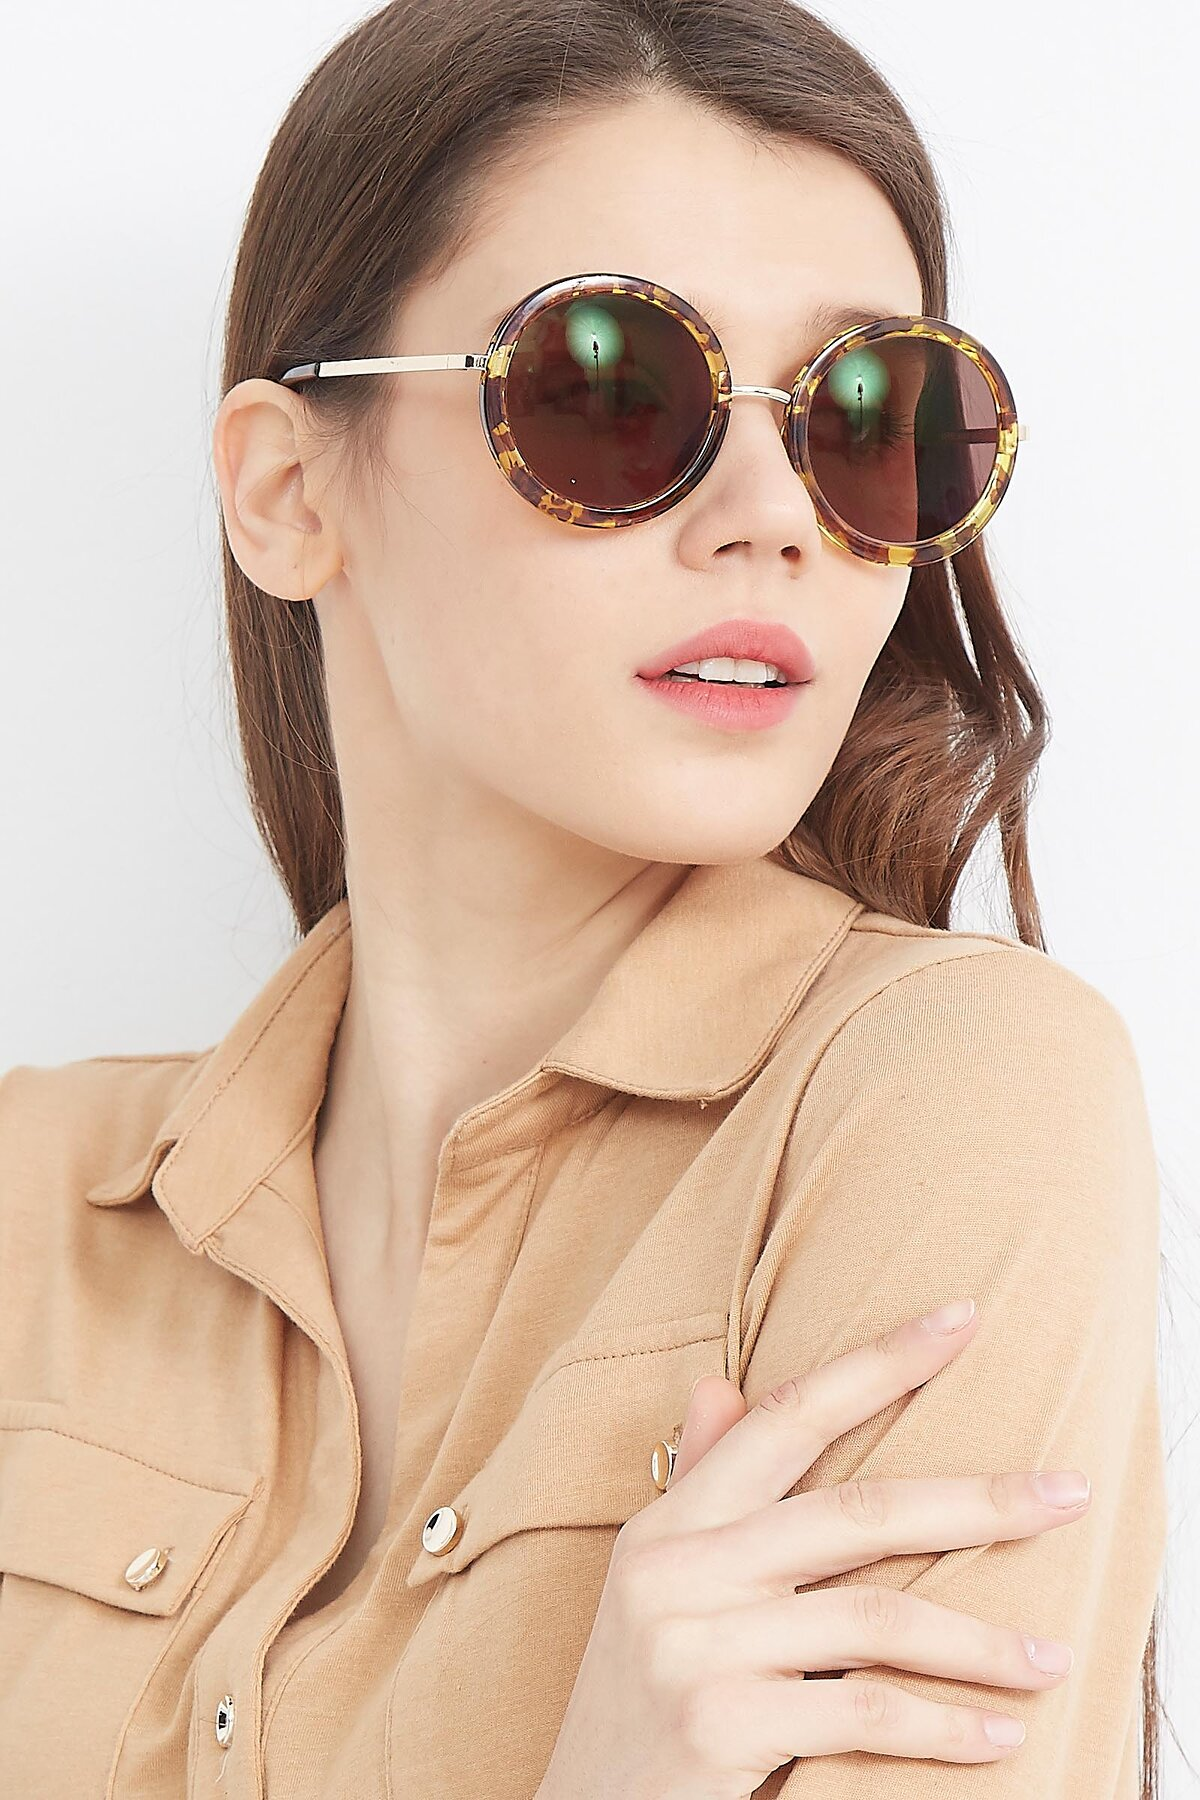 Women's lifestyle photography (portrait-1) of Bloom in Transparent Tortoise with Brown Tinted Lenses